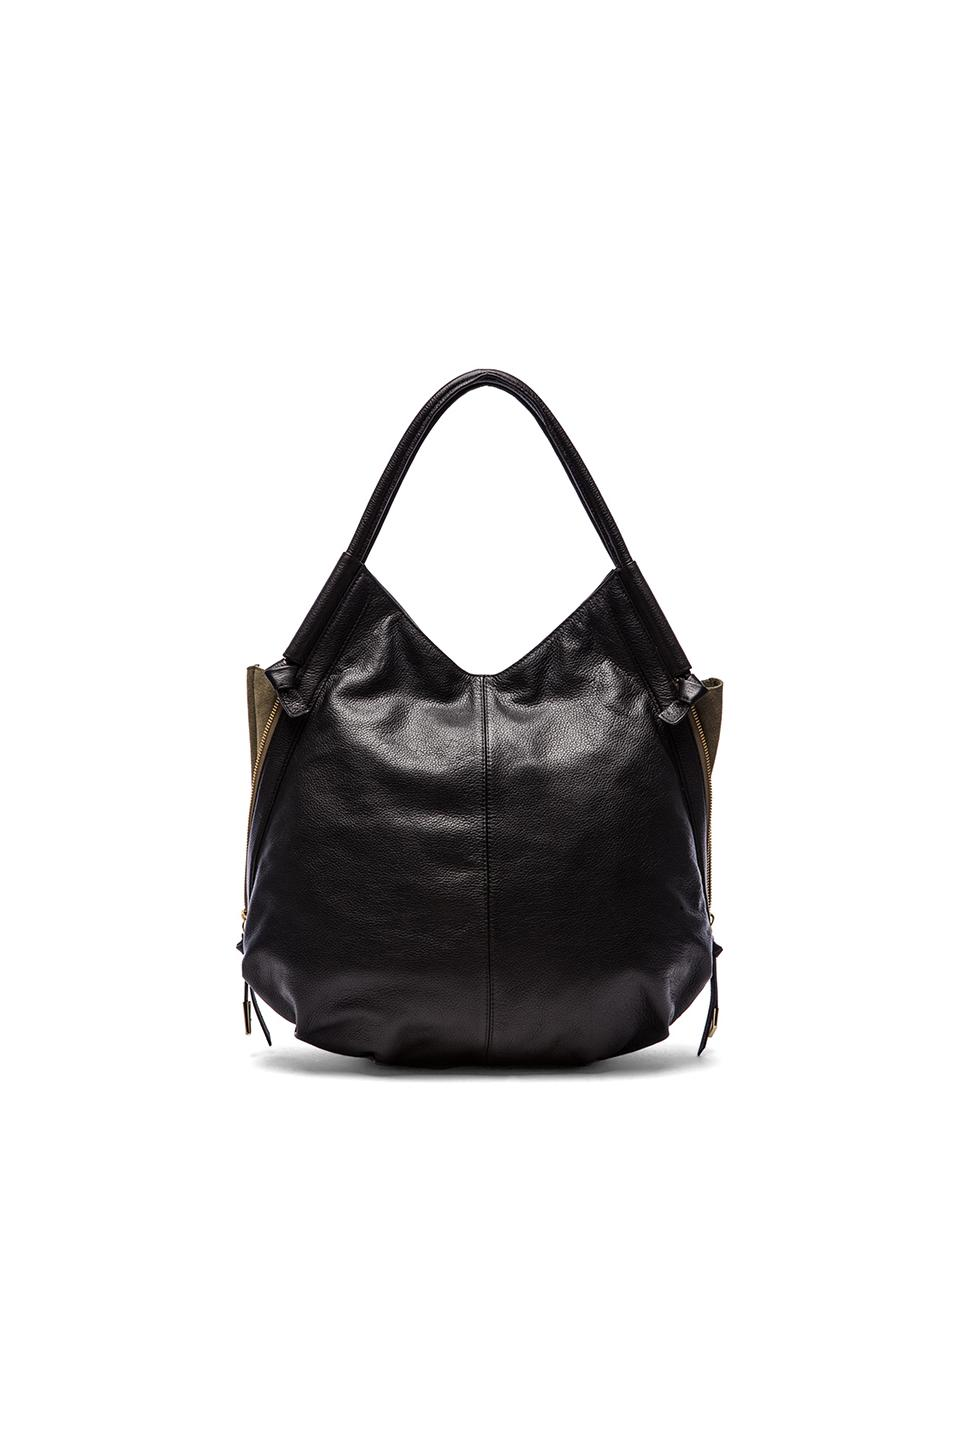 Foley + Corinna Trapeze Hobo in Black